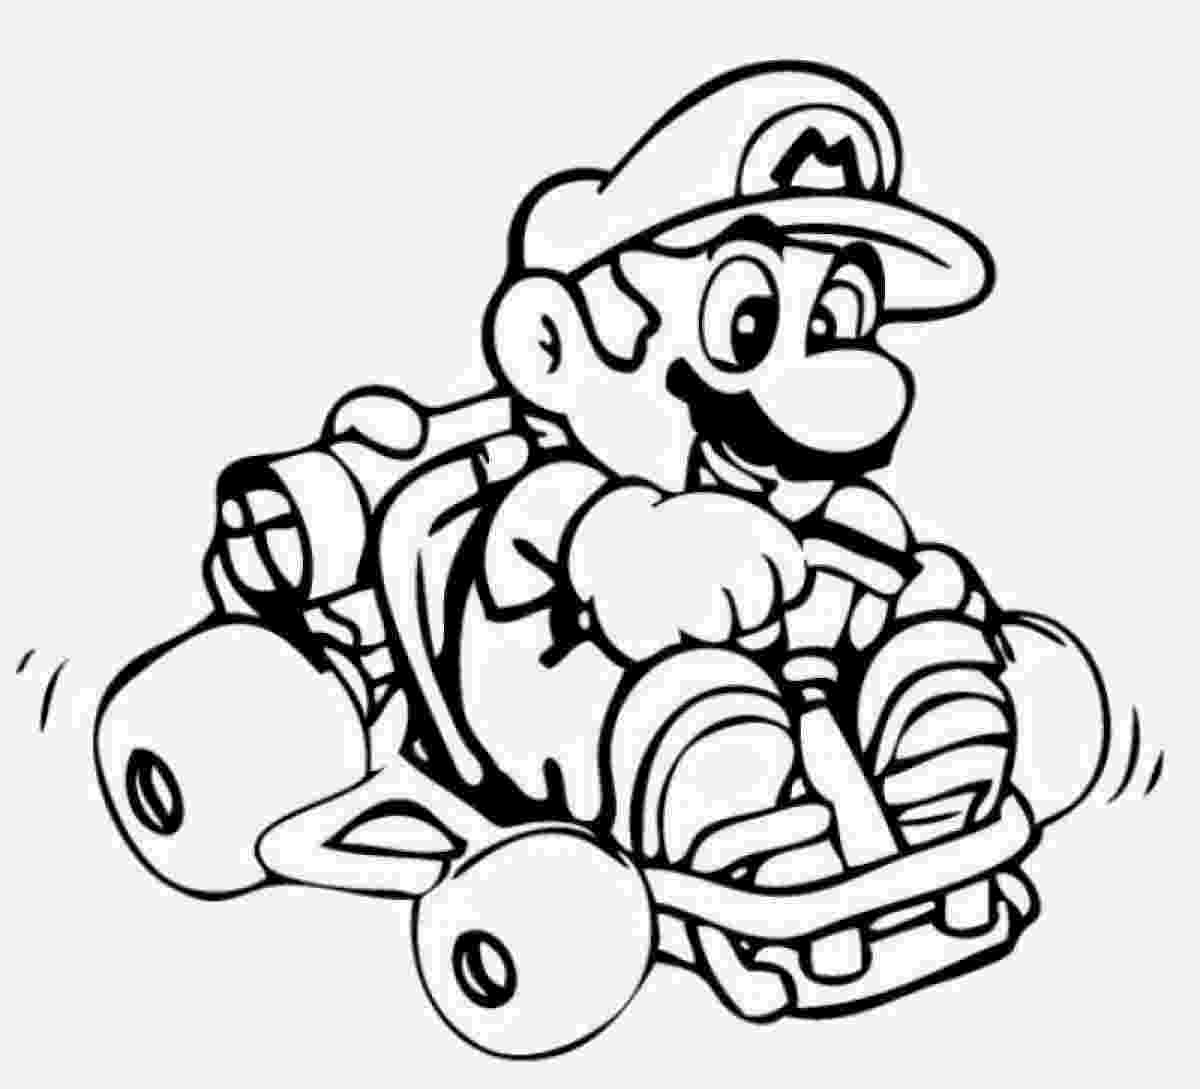 print mario mario kart coloring pages best coloring pages for kids print mario 1 2